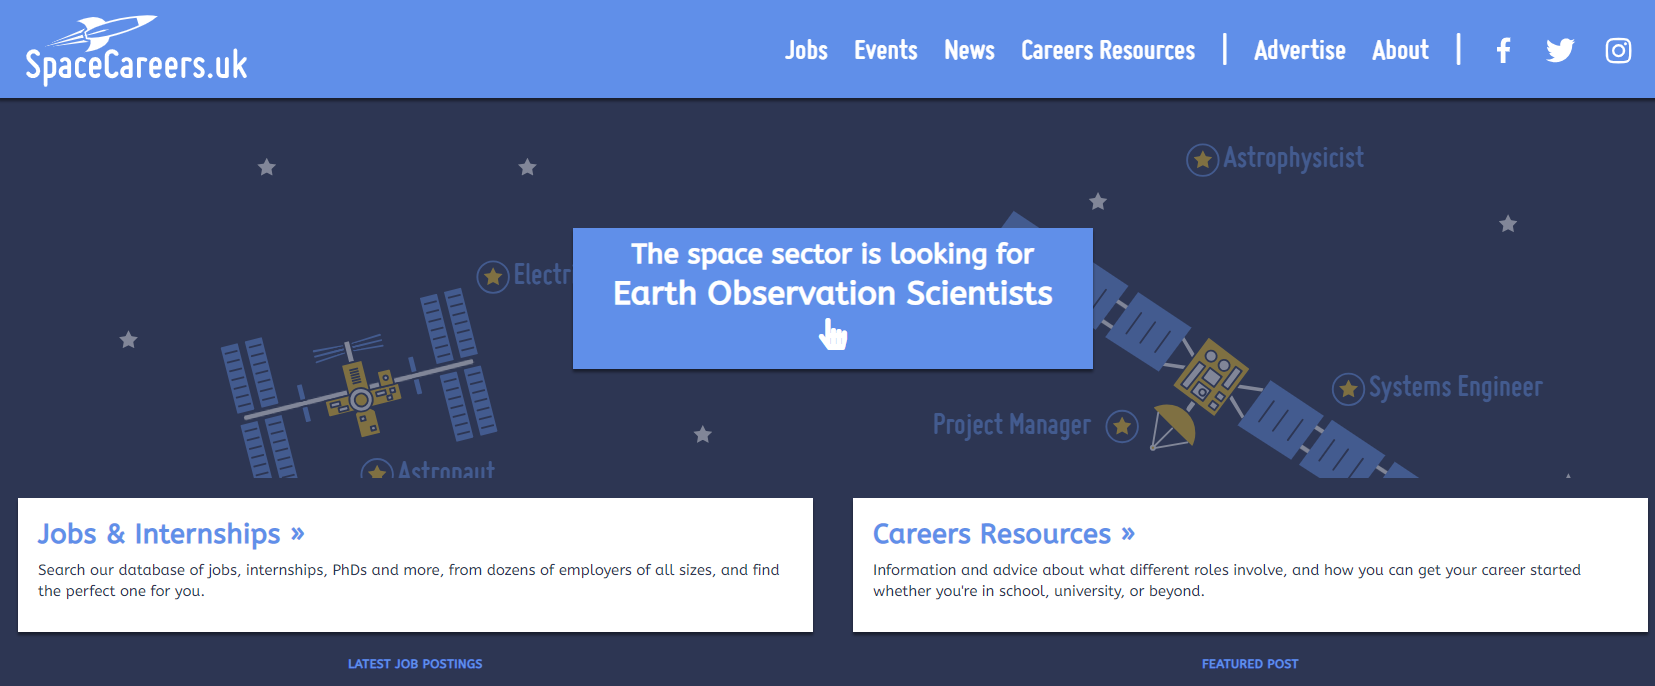 Screenshot from Space Careers UK